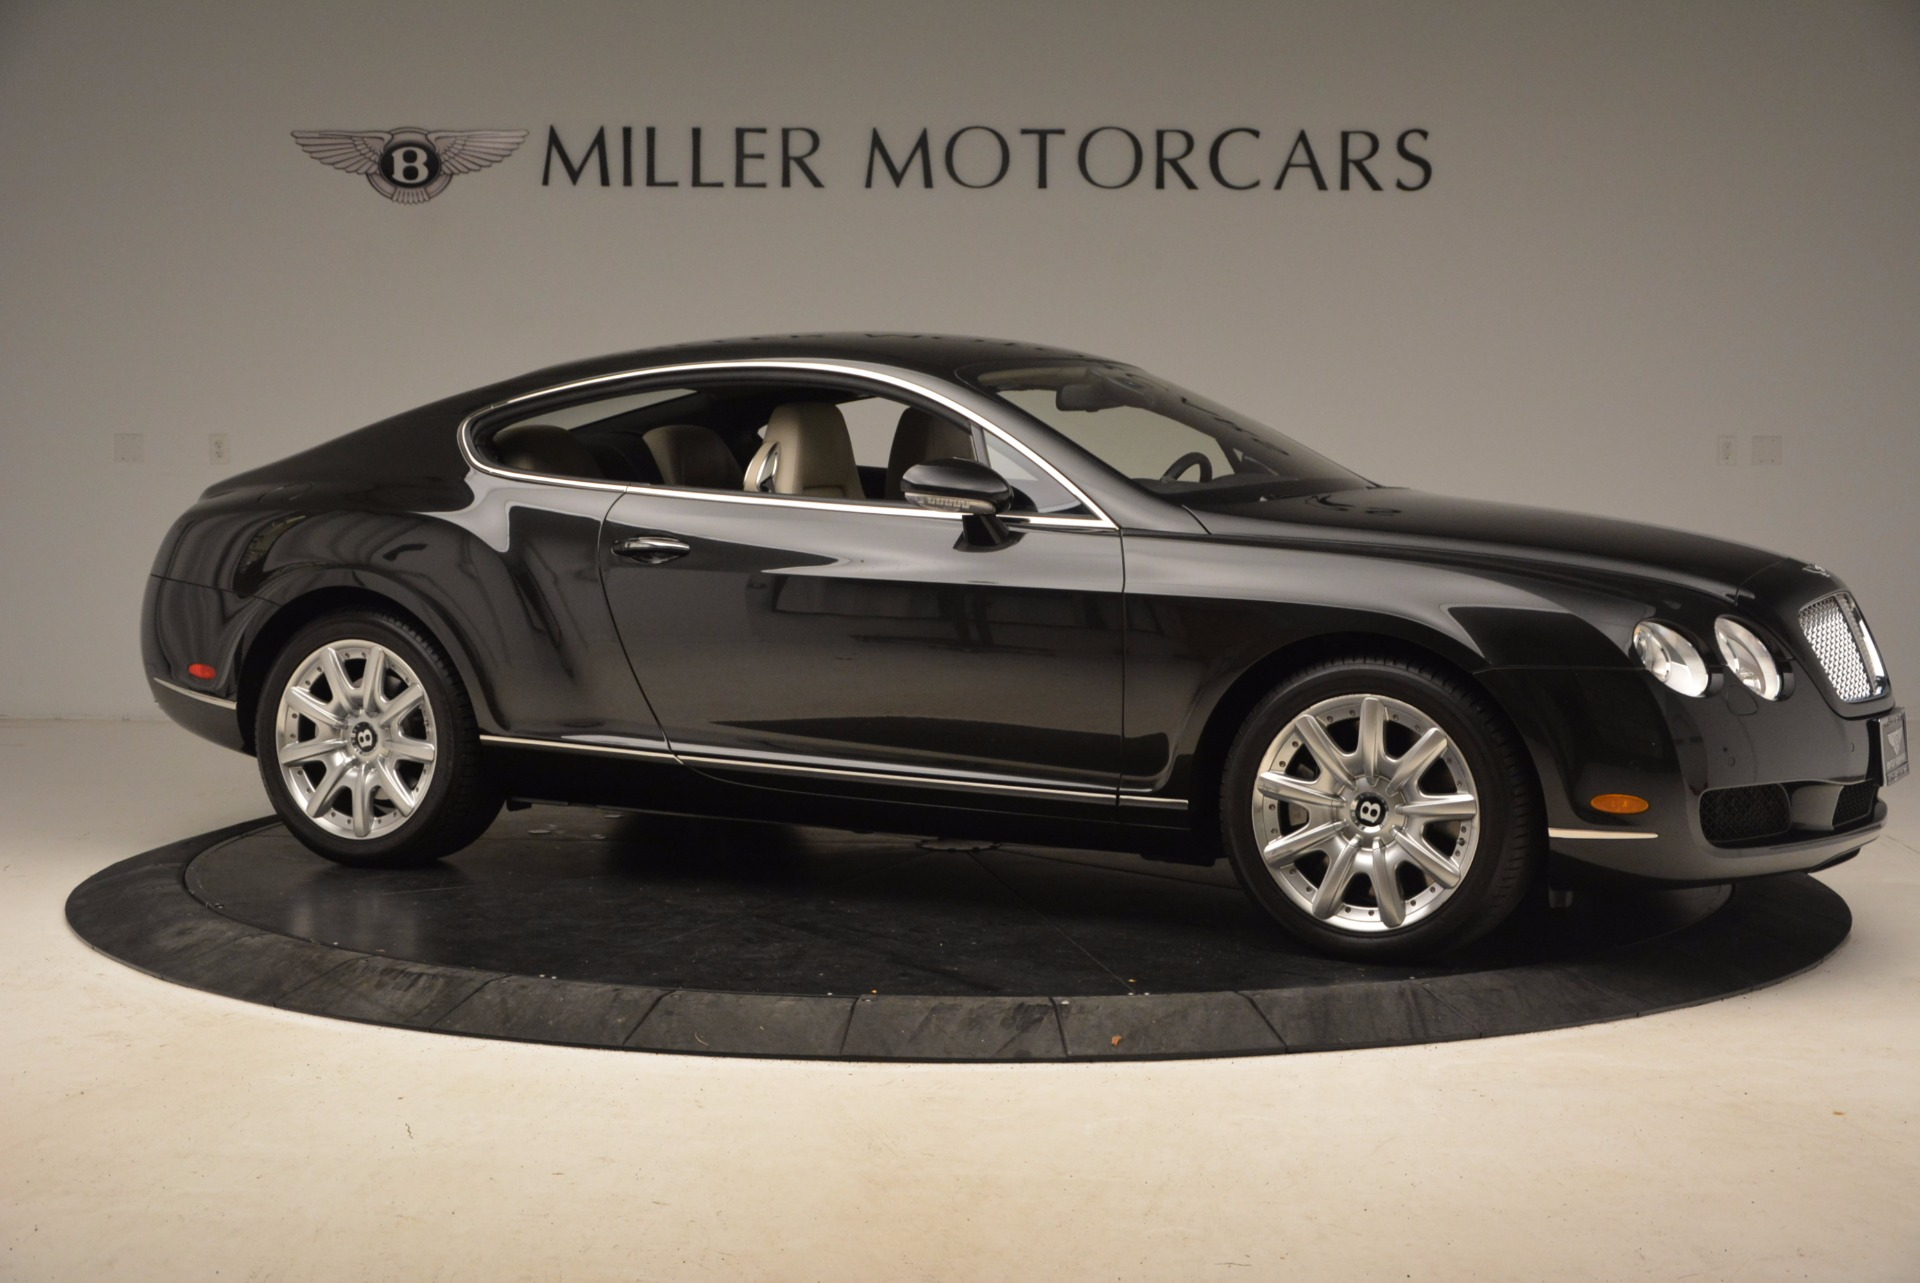 Used 2005 Bentley Continental GT W12 For Sale In Greenwich, CT 1677_p10